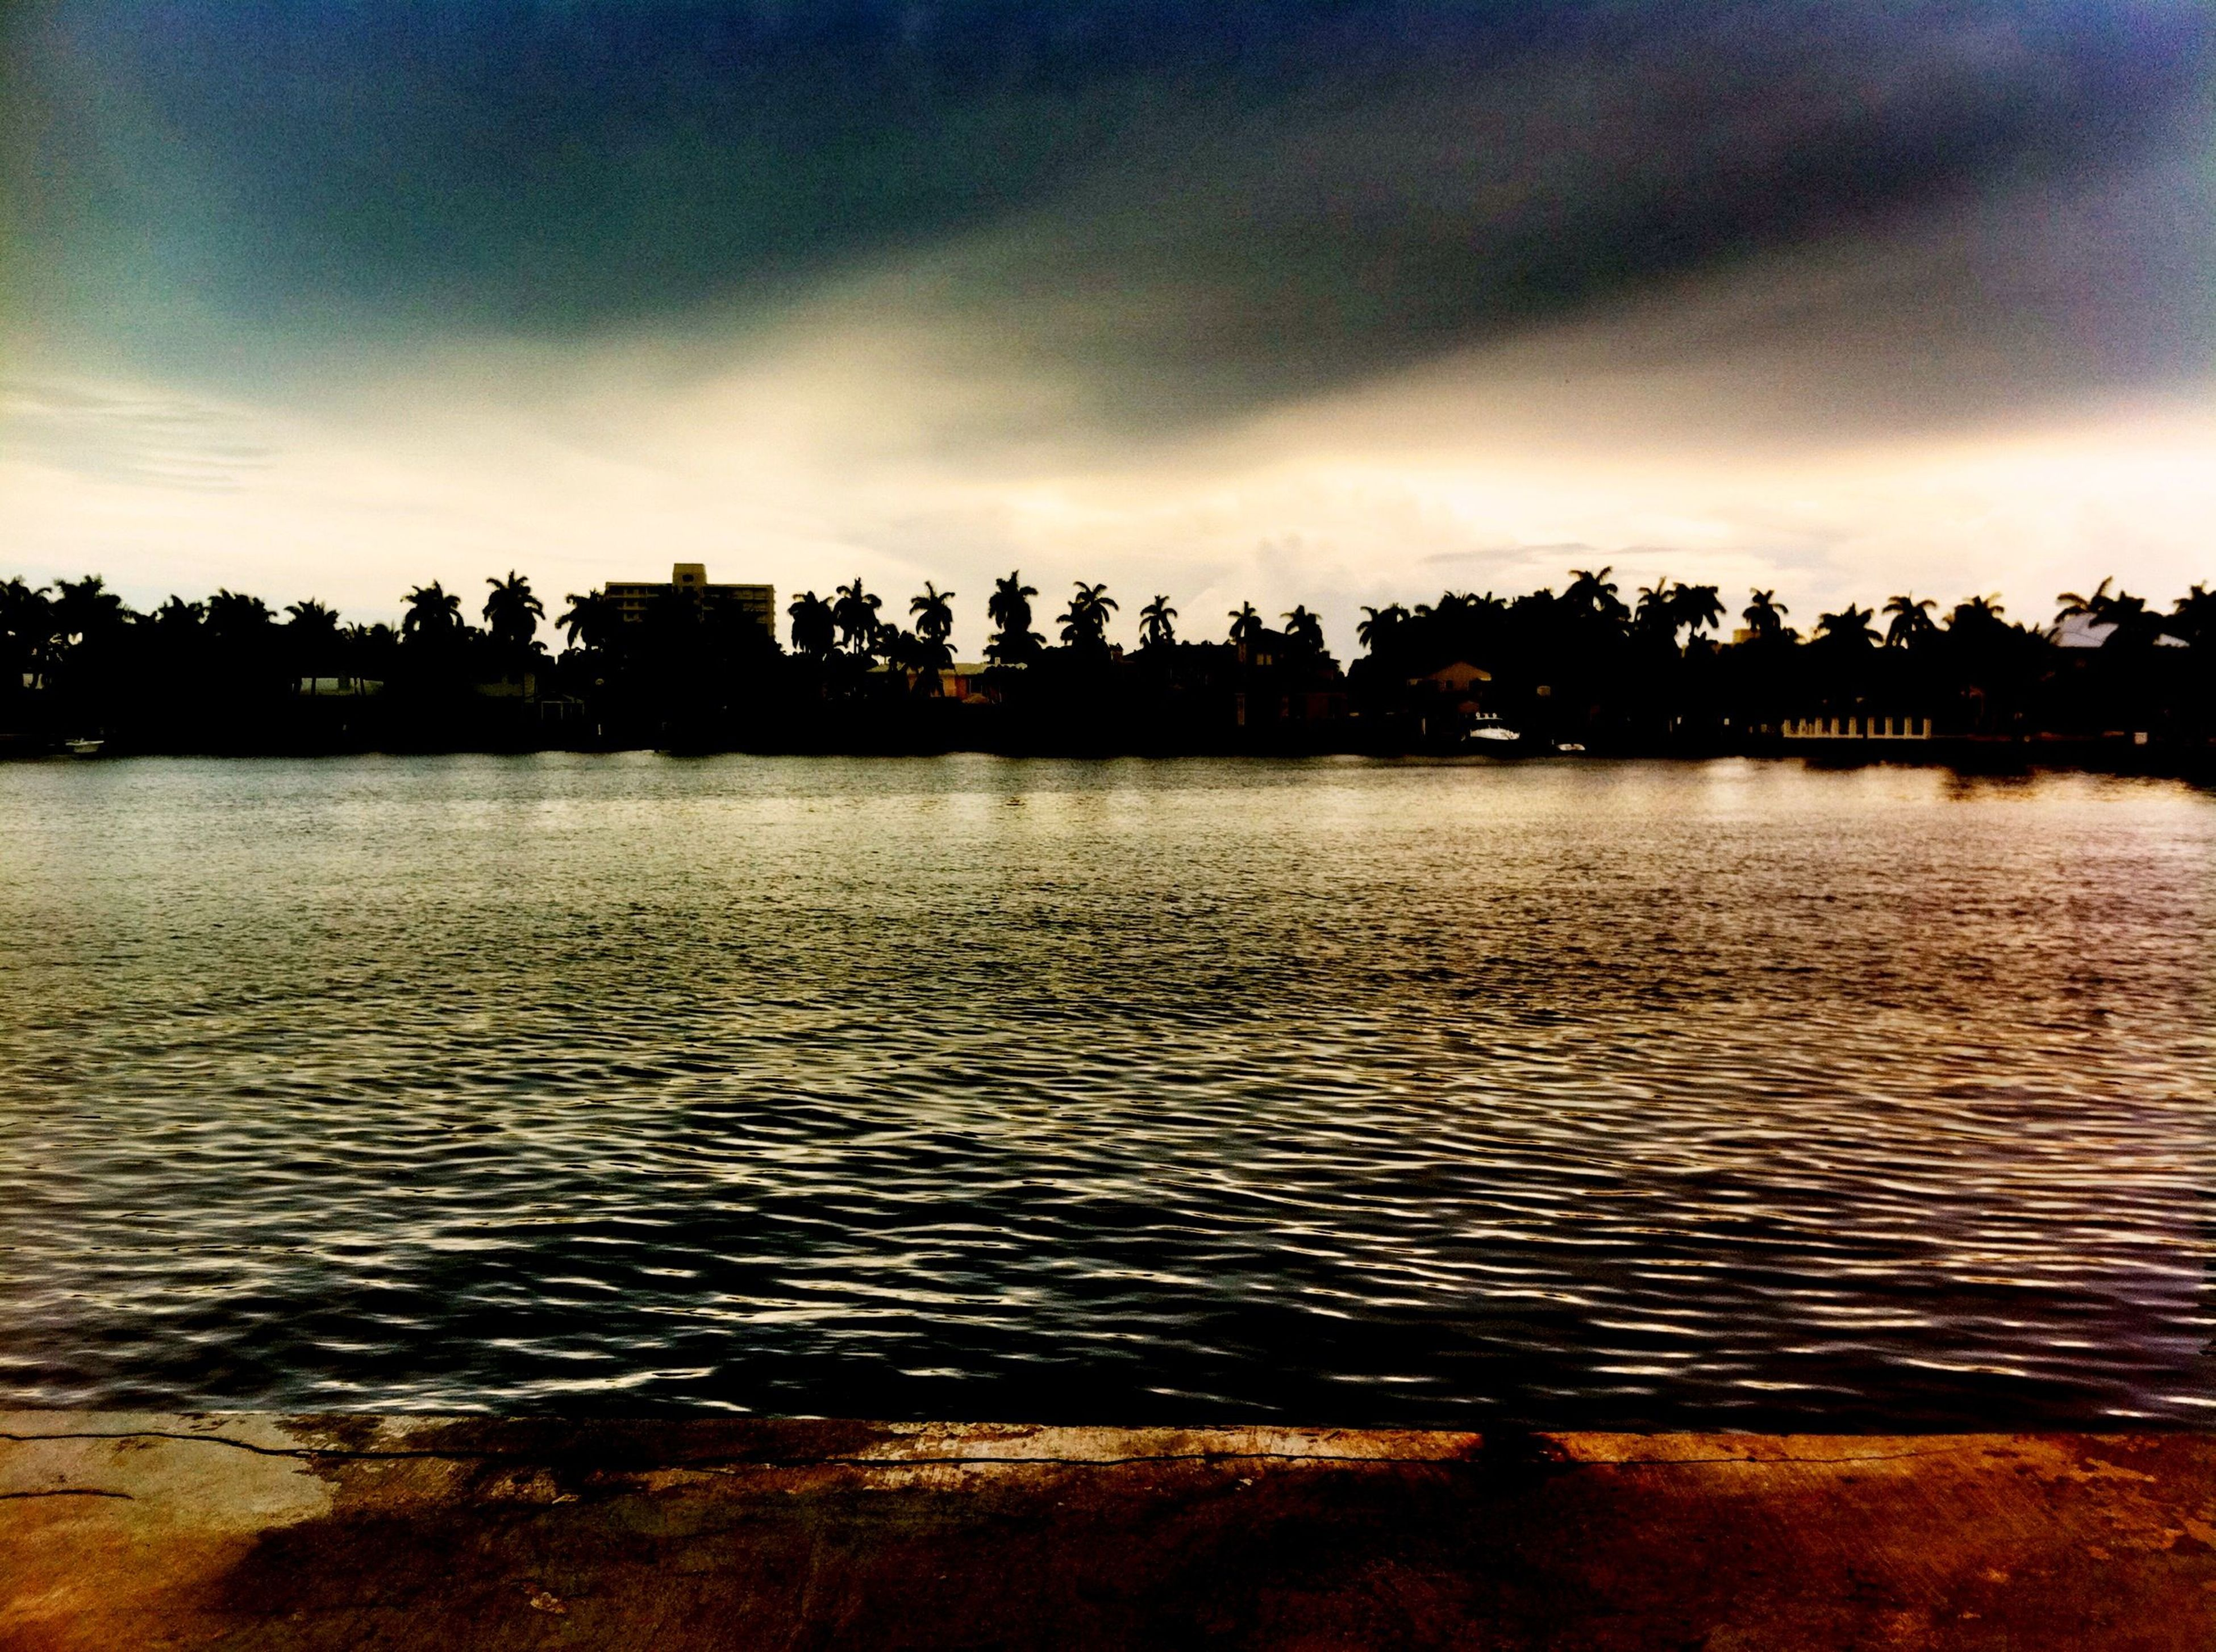 water, sky, cloud - sky, waterfront, scenics, tranquil scene, silhouette, tranquility, sunset, beauty in nature, rippled, cloudy, dusk, reflection, tree, lake, nature, cloud, river, illuminated